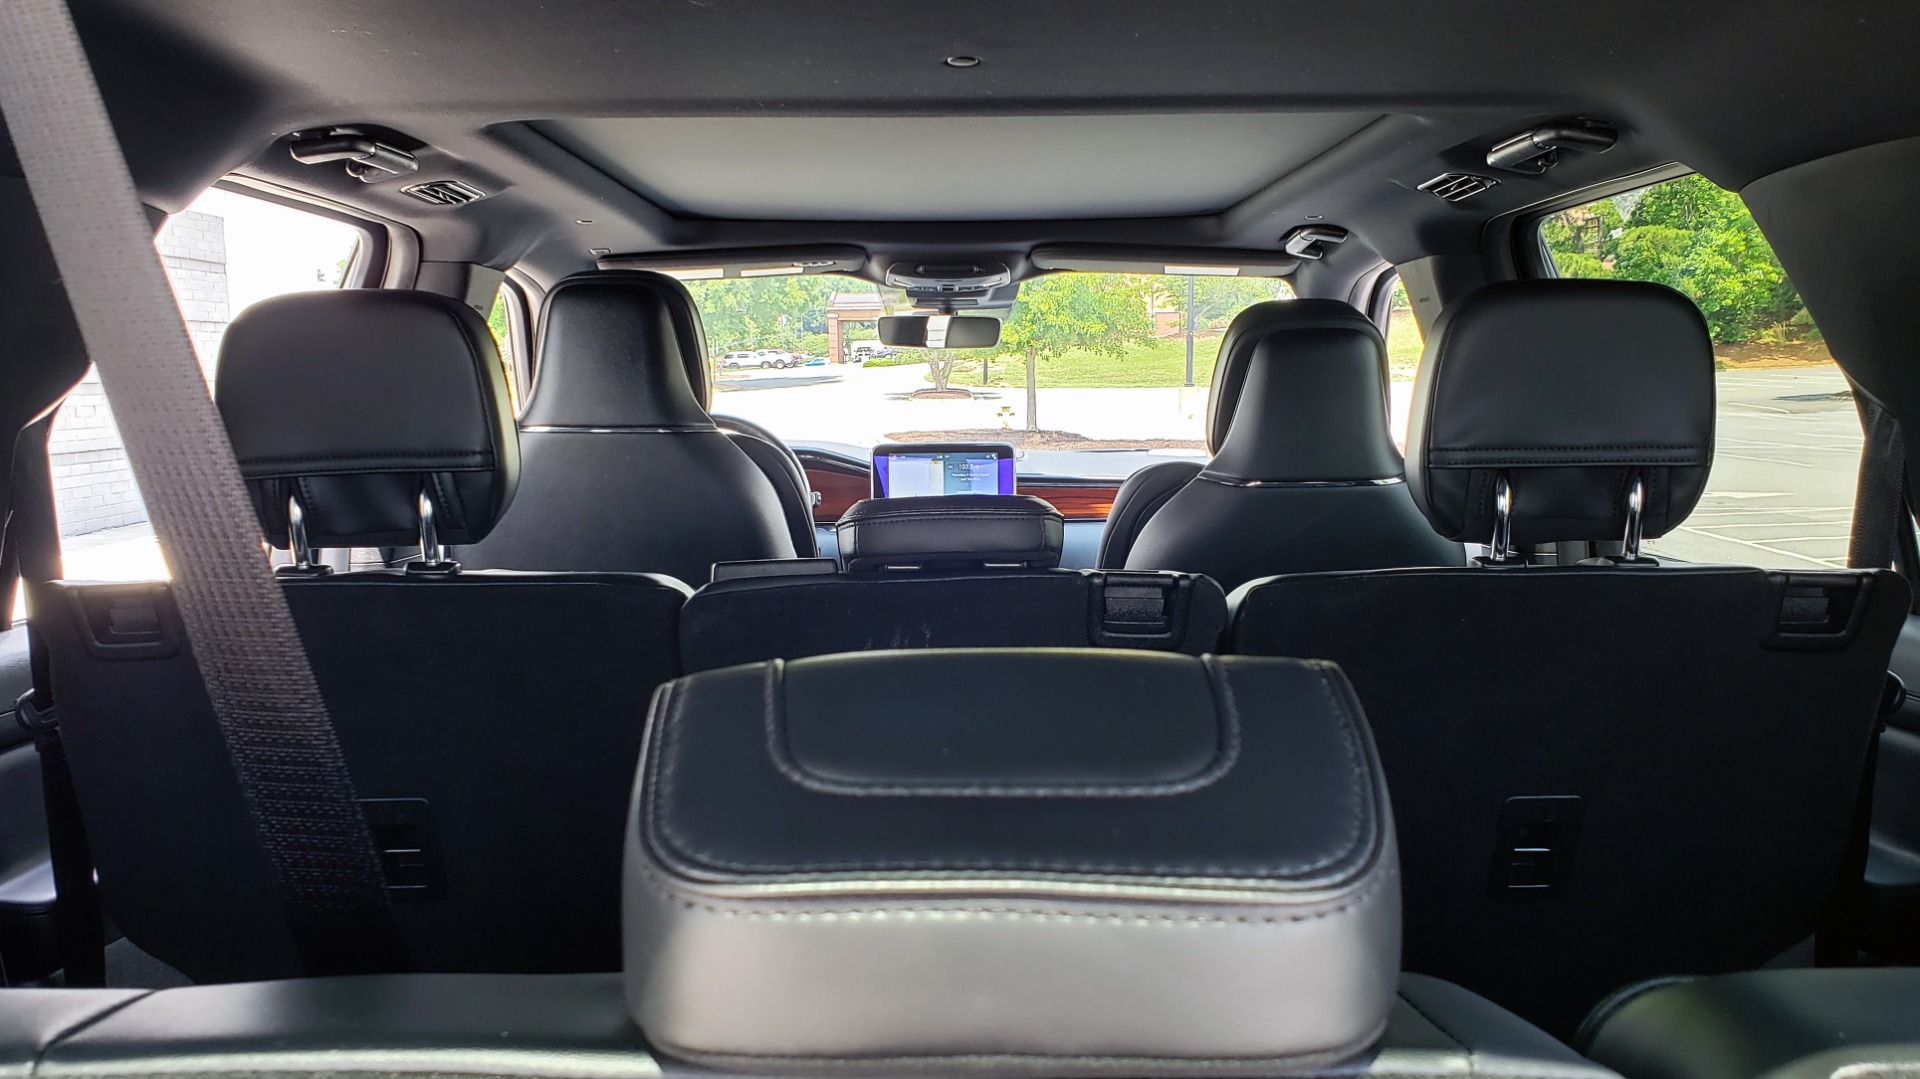 Used 2019 Lincoln NAVIGATOR RESERVE 4X4 / NAV / PANO-ROOF / REVEL ULTIMA AUDIO / 3-ROW / REARVIEW for sale $74,795 at Formula Imports in Charlotte NC 28227 22